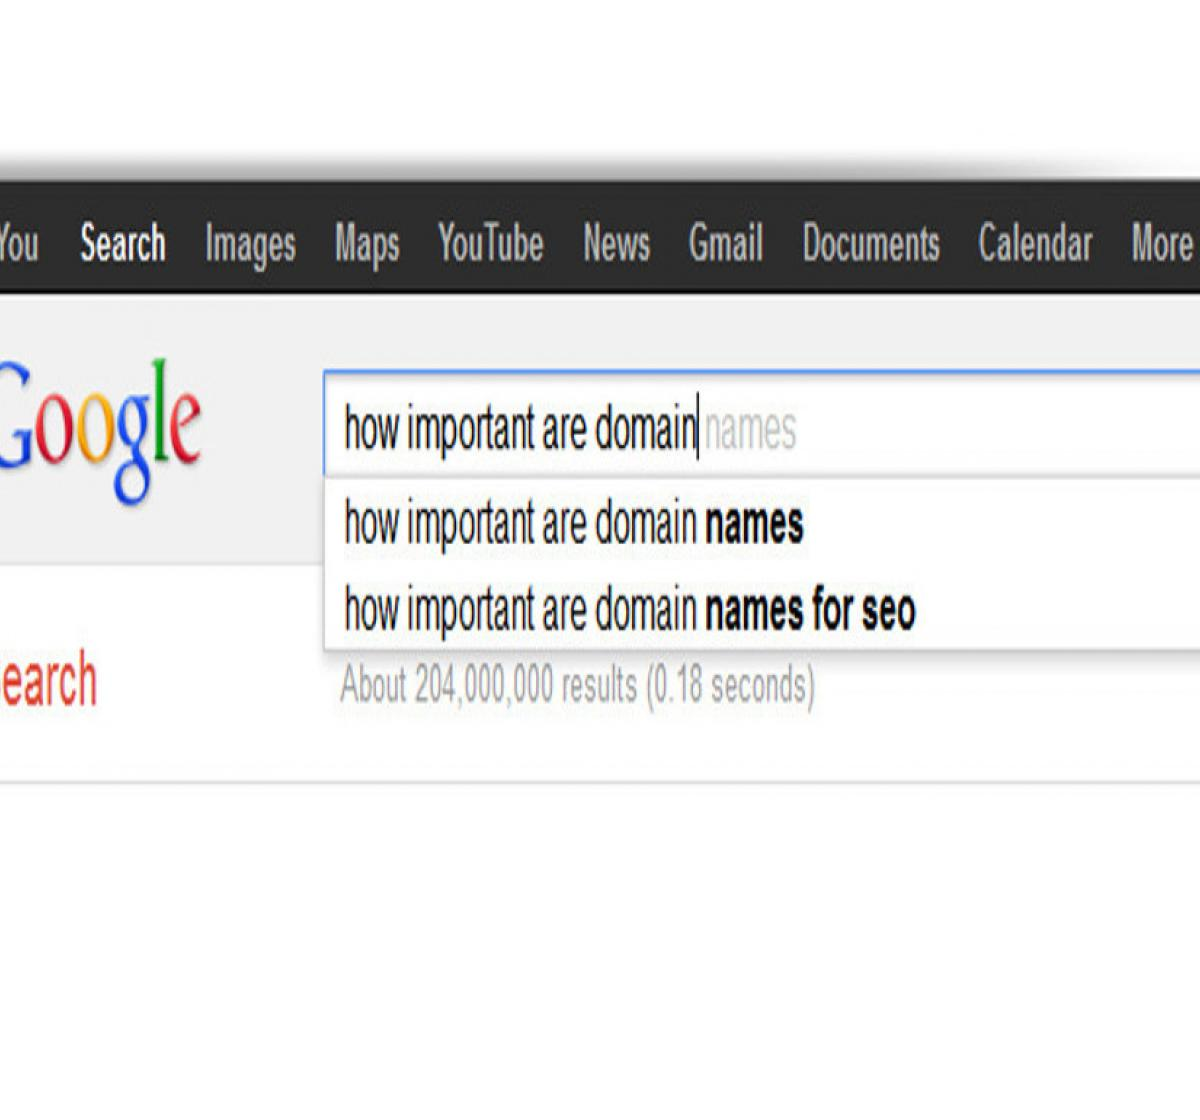 domain-name-importance